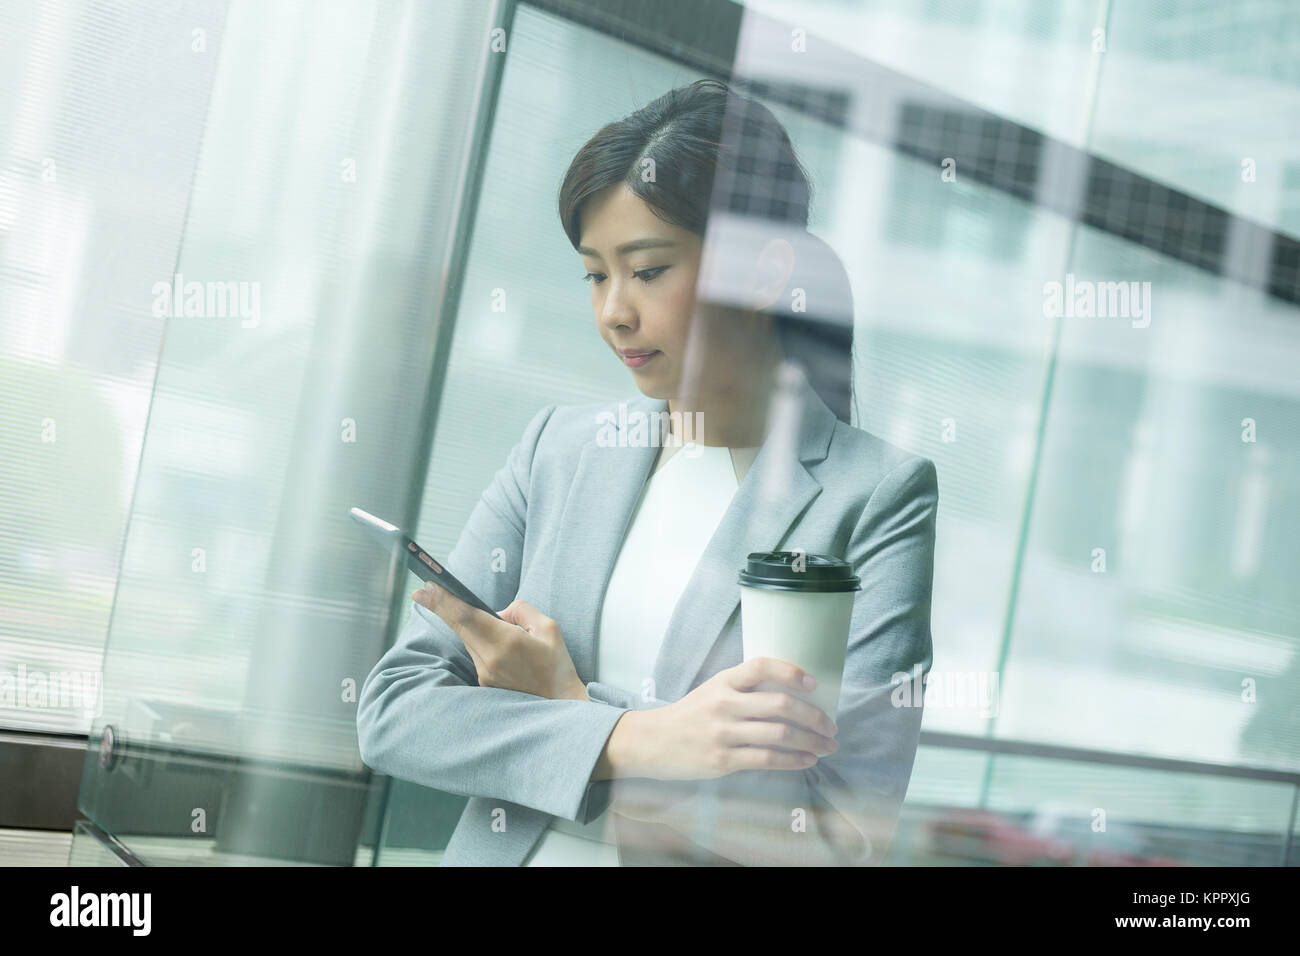 Businesswoman use of mobile phone inside office building - Stock Image